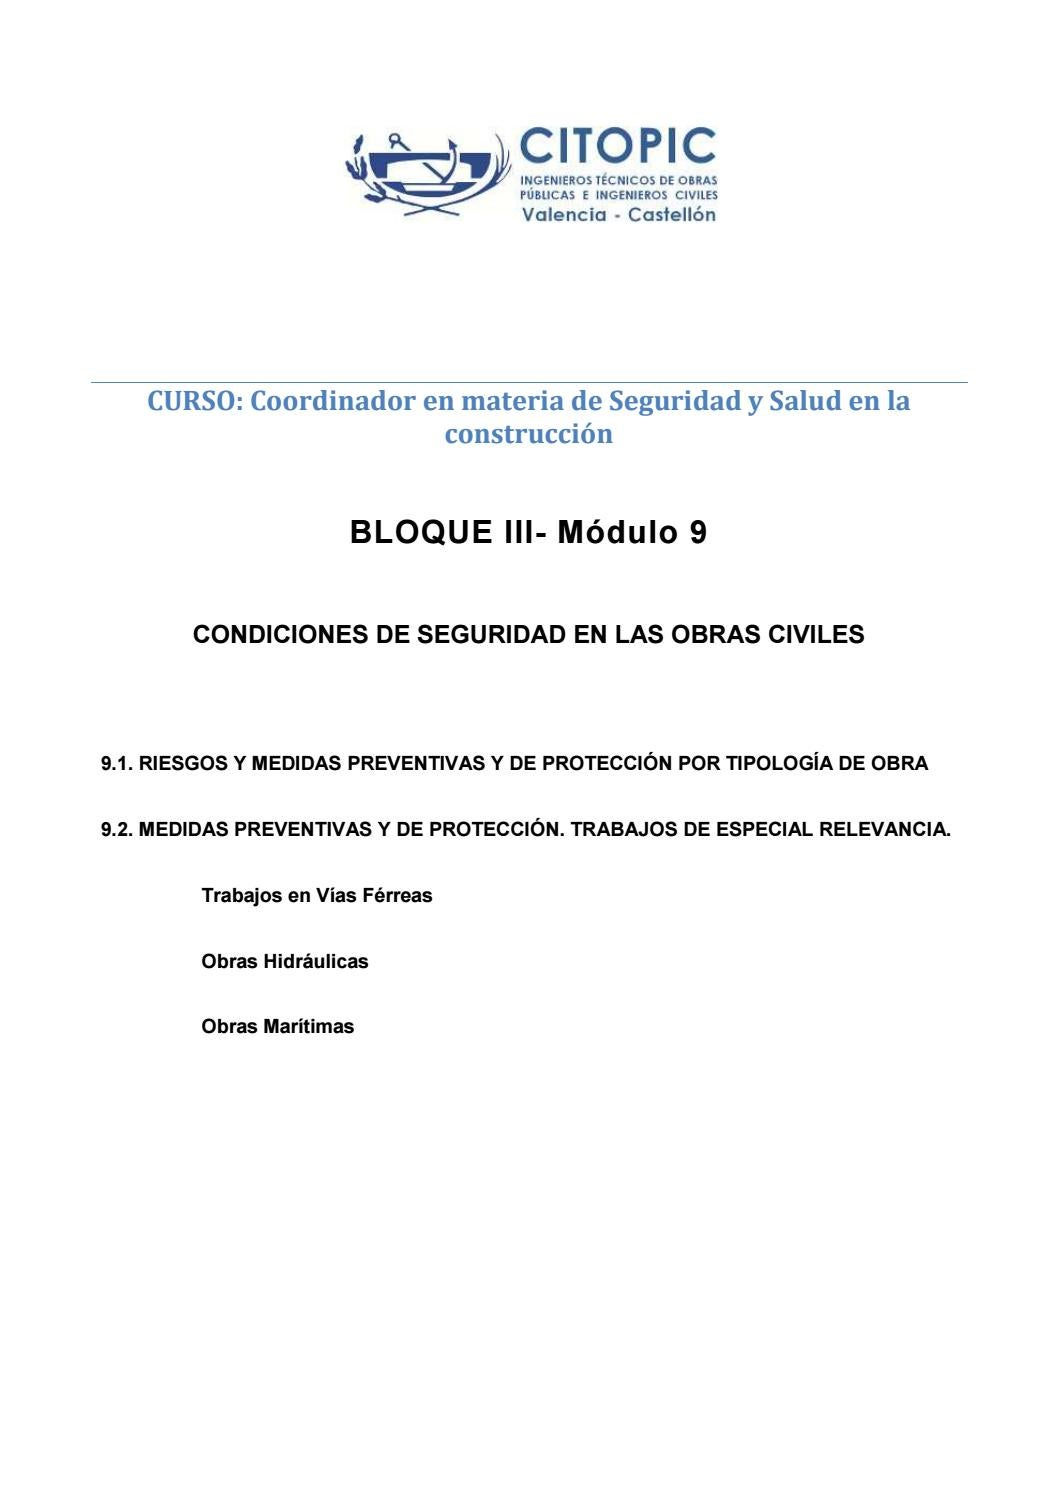 Csys bloque III modulo9 by CITOPIC-CV - issuu